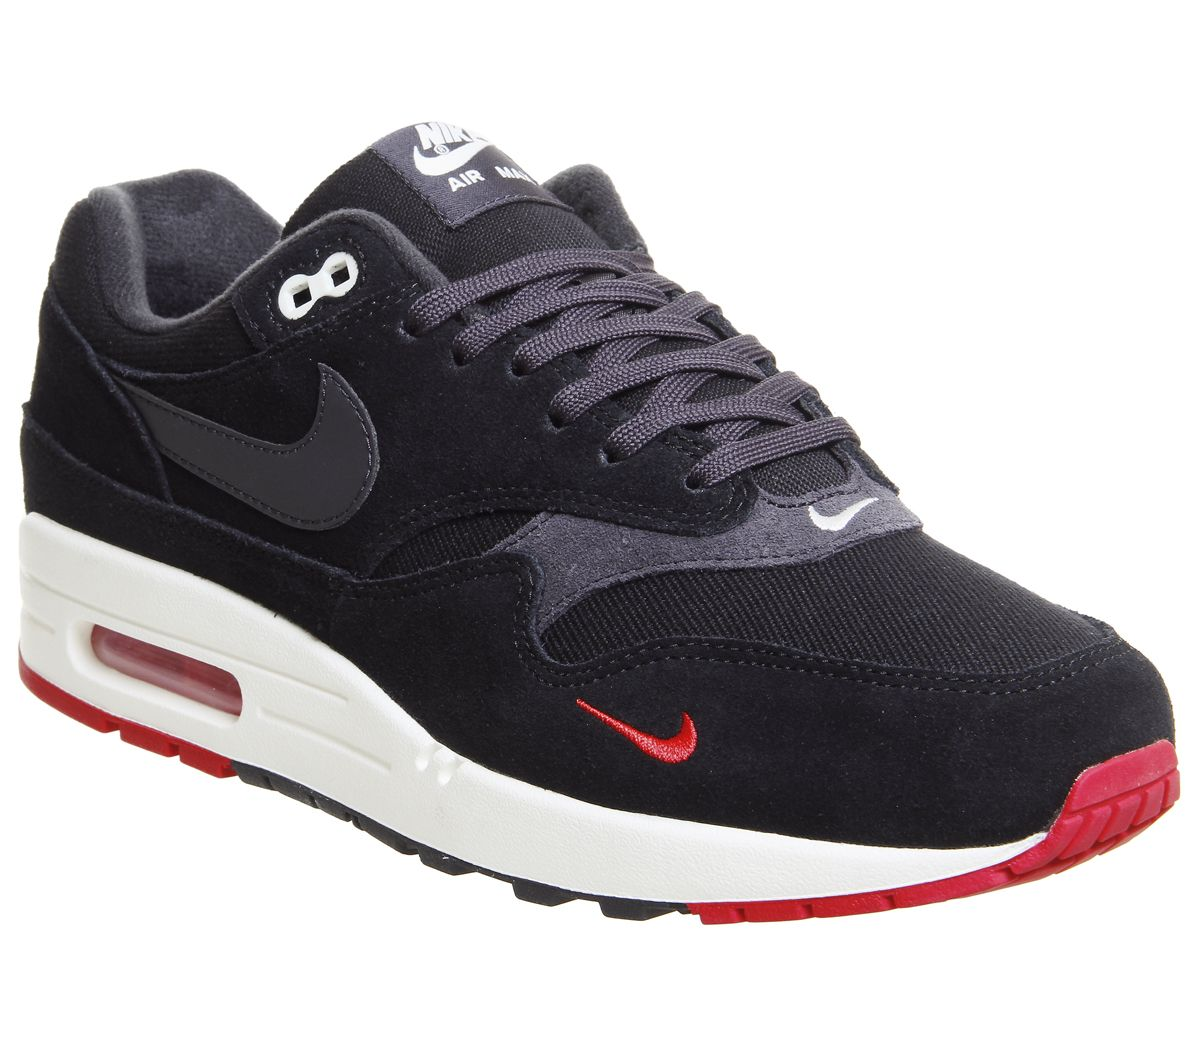 30c32c2315 Nike Air Max 1 Trainers Black Oil Grey Red - His trainers